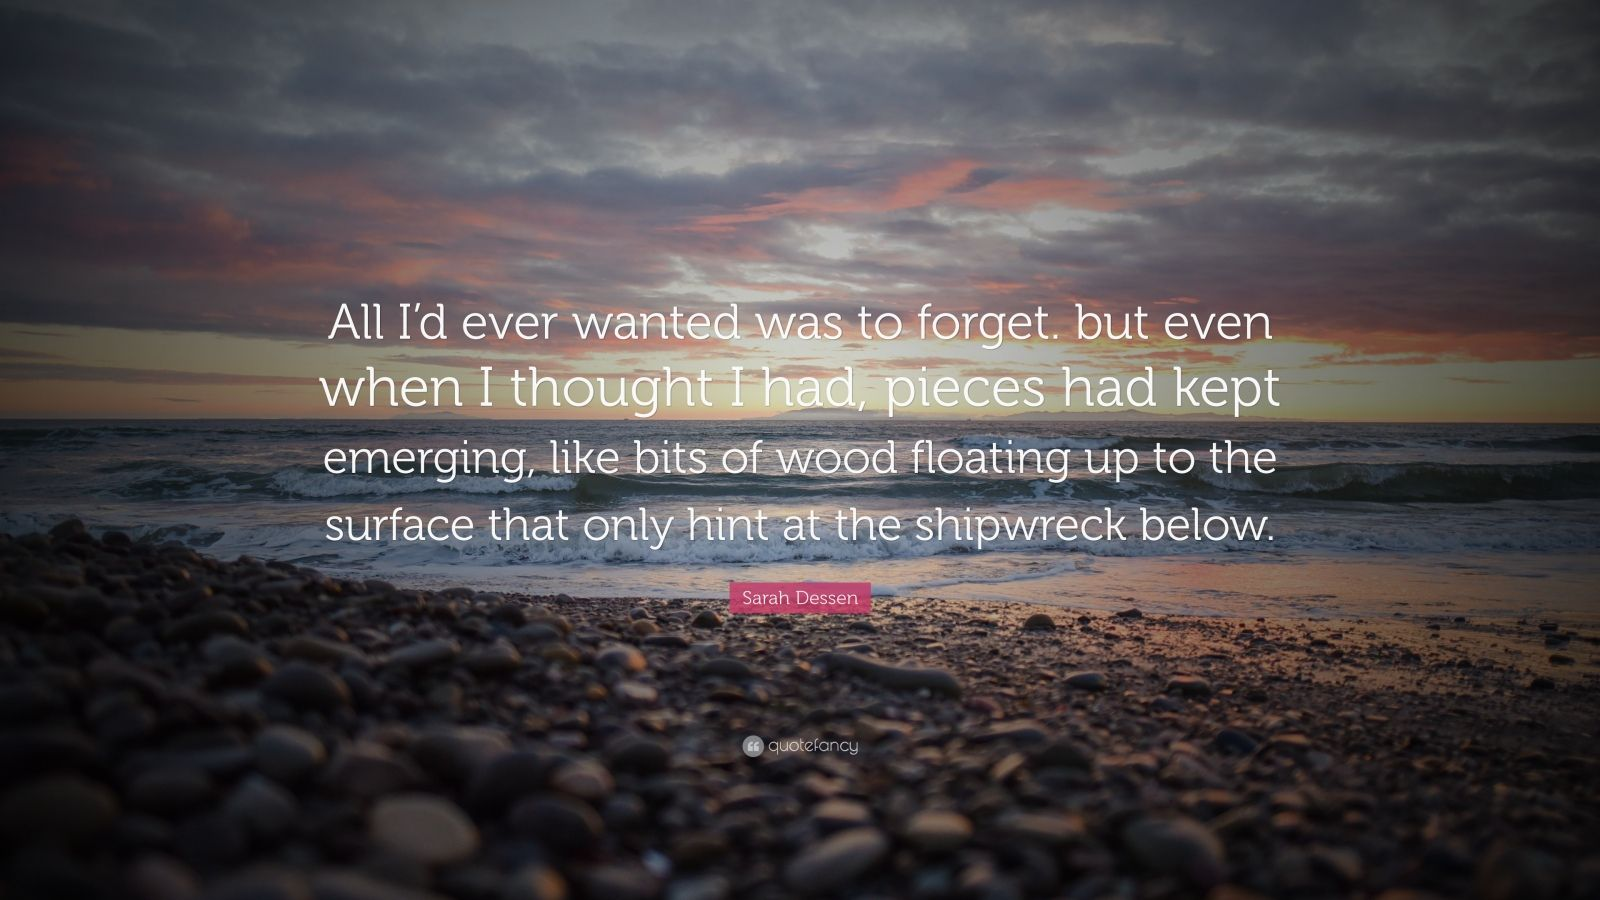 "Sarah Dessen Quote: ""All I'd ever wanted was to forget. but even when I thought I had, pieces had kept emerging, like bits of wood floating up to the surface that only hint at the shipwreck below."""